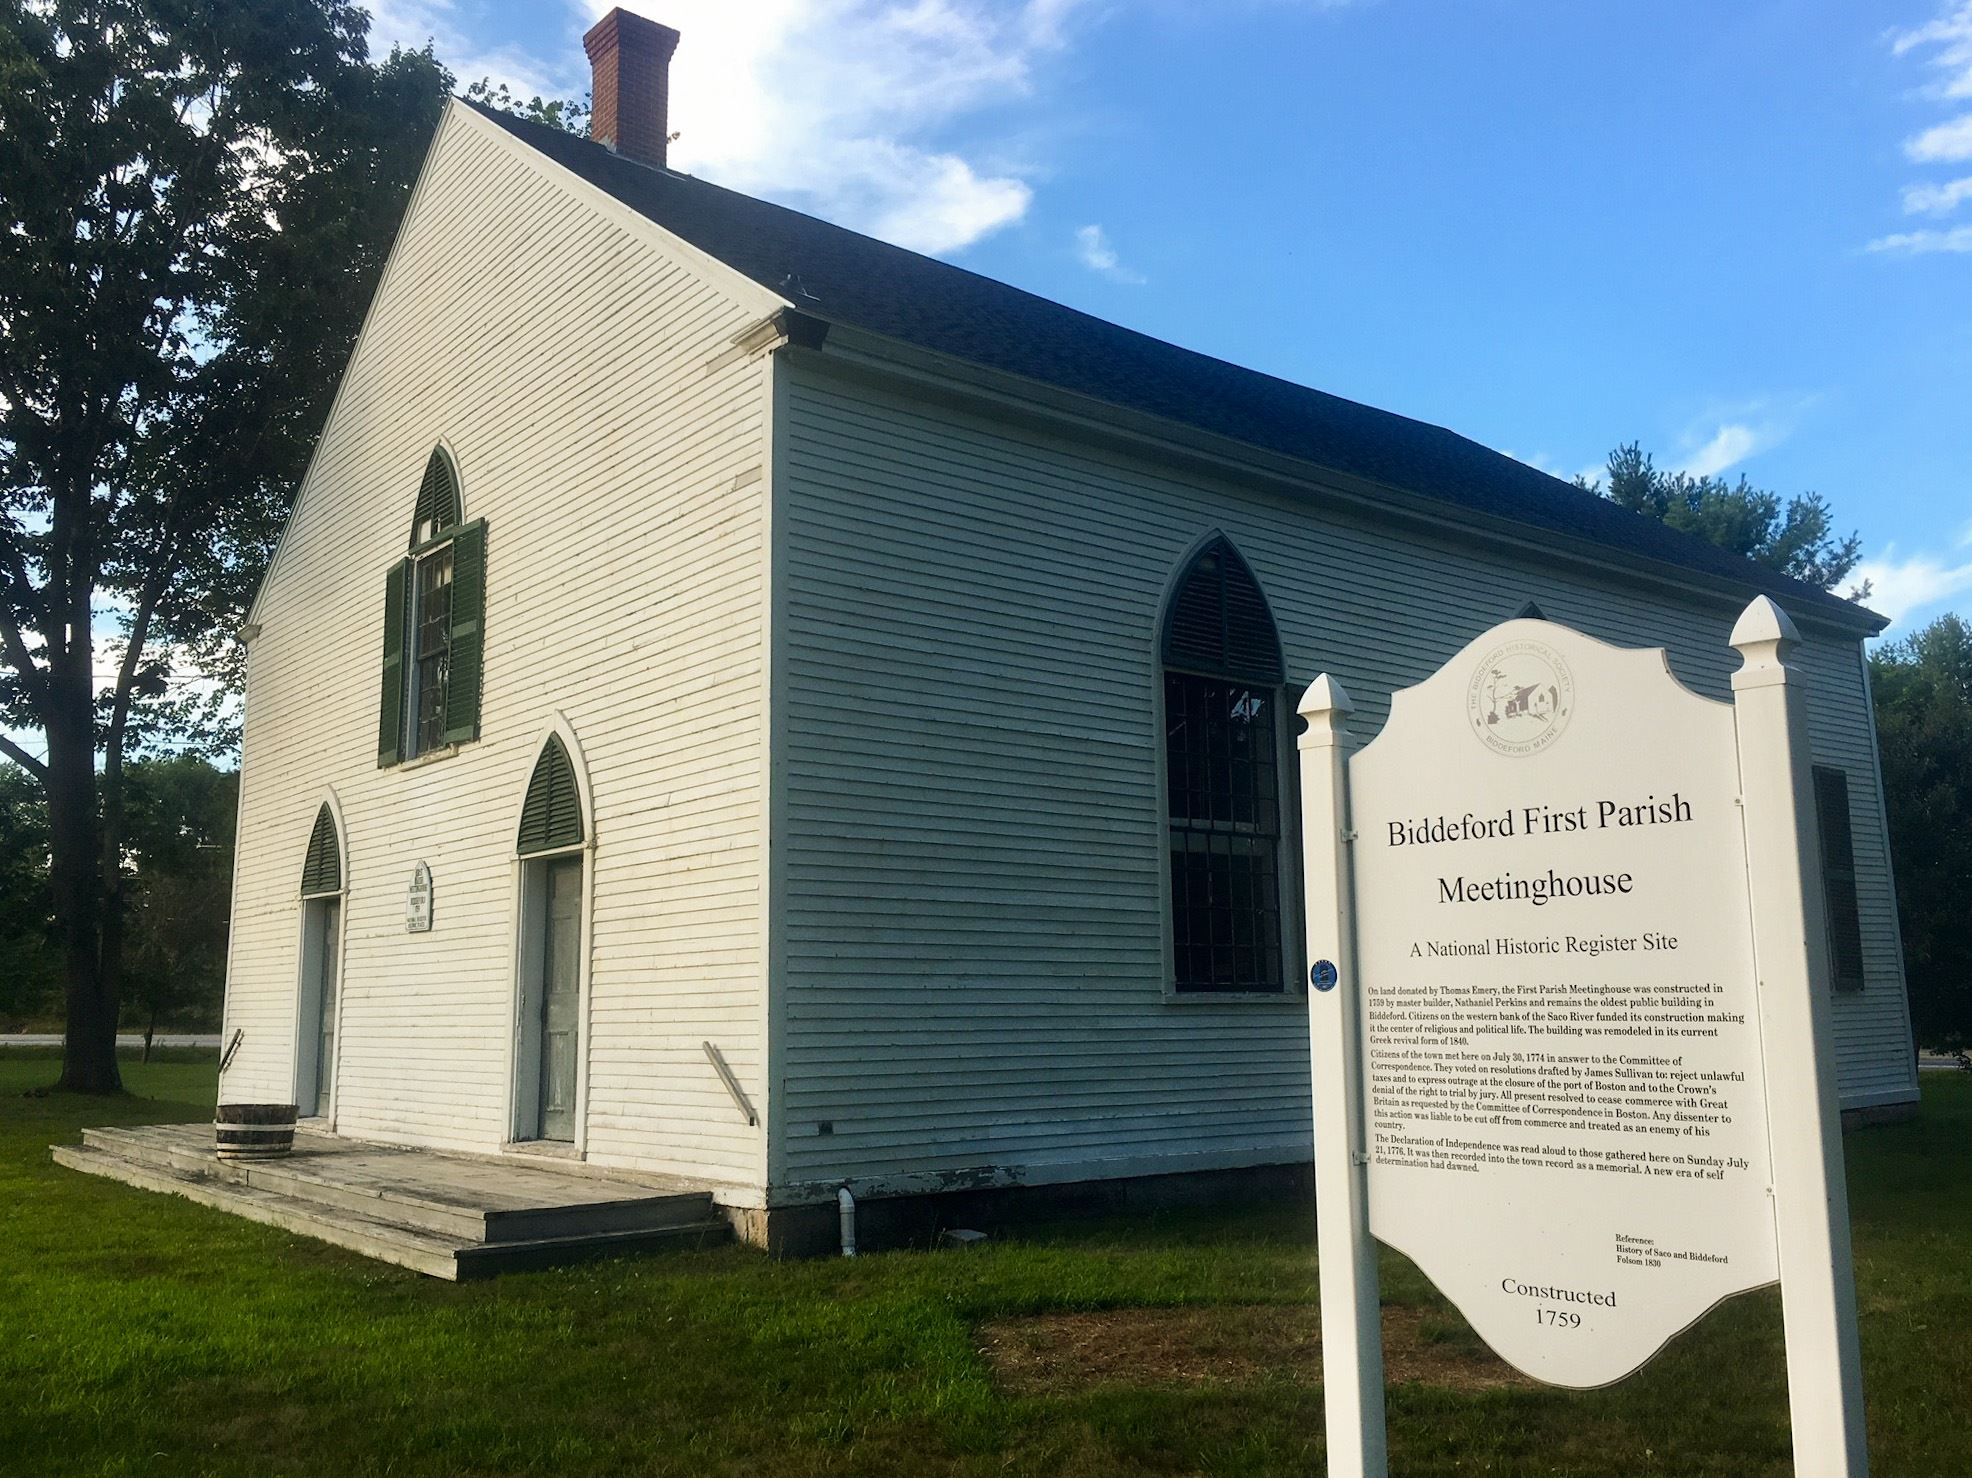 First Parish Meetinghouse